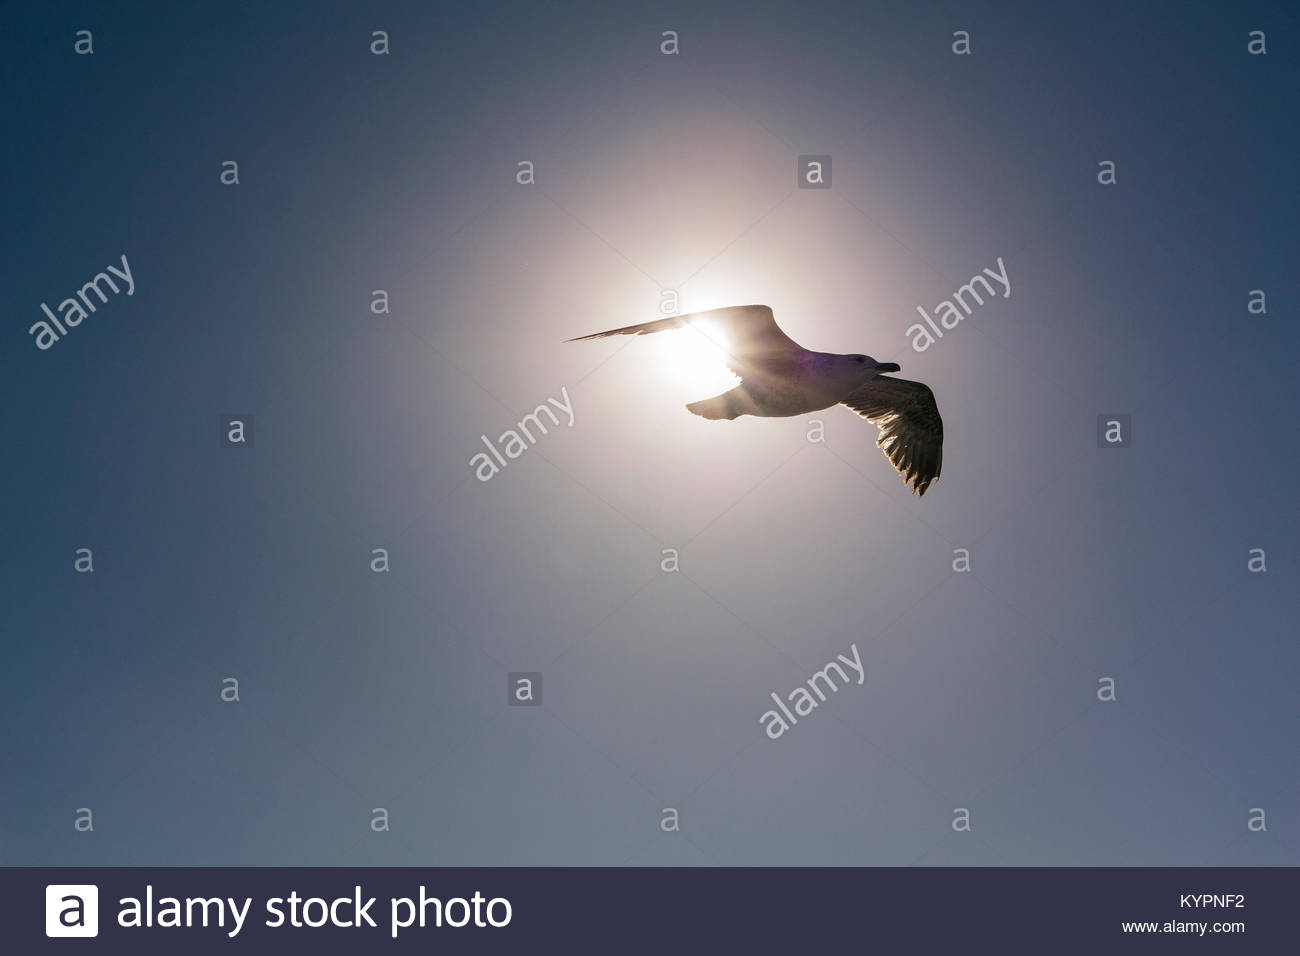 laridae-known-as-seagull-flying-KYPNF2.jpg